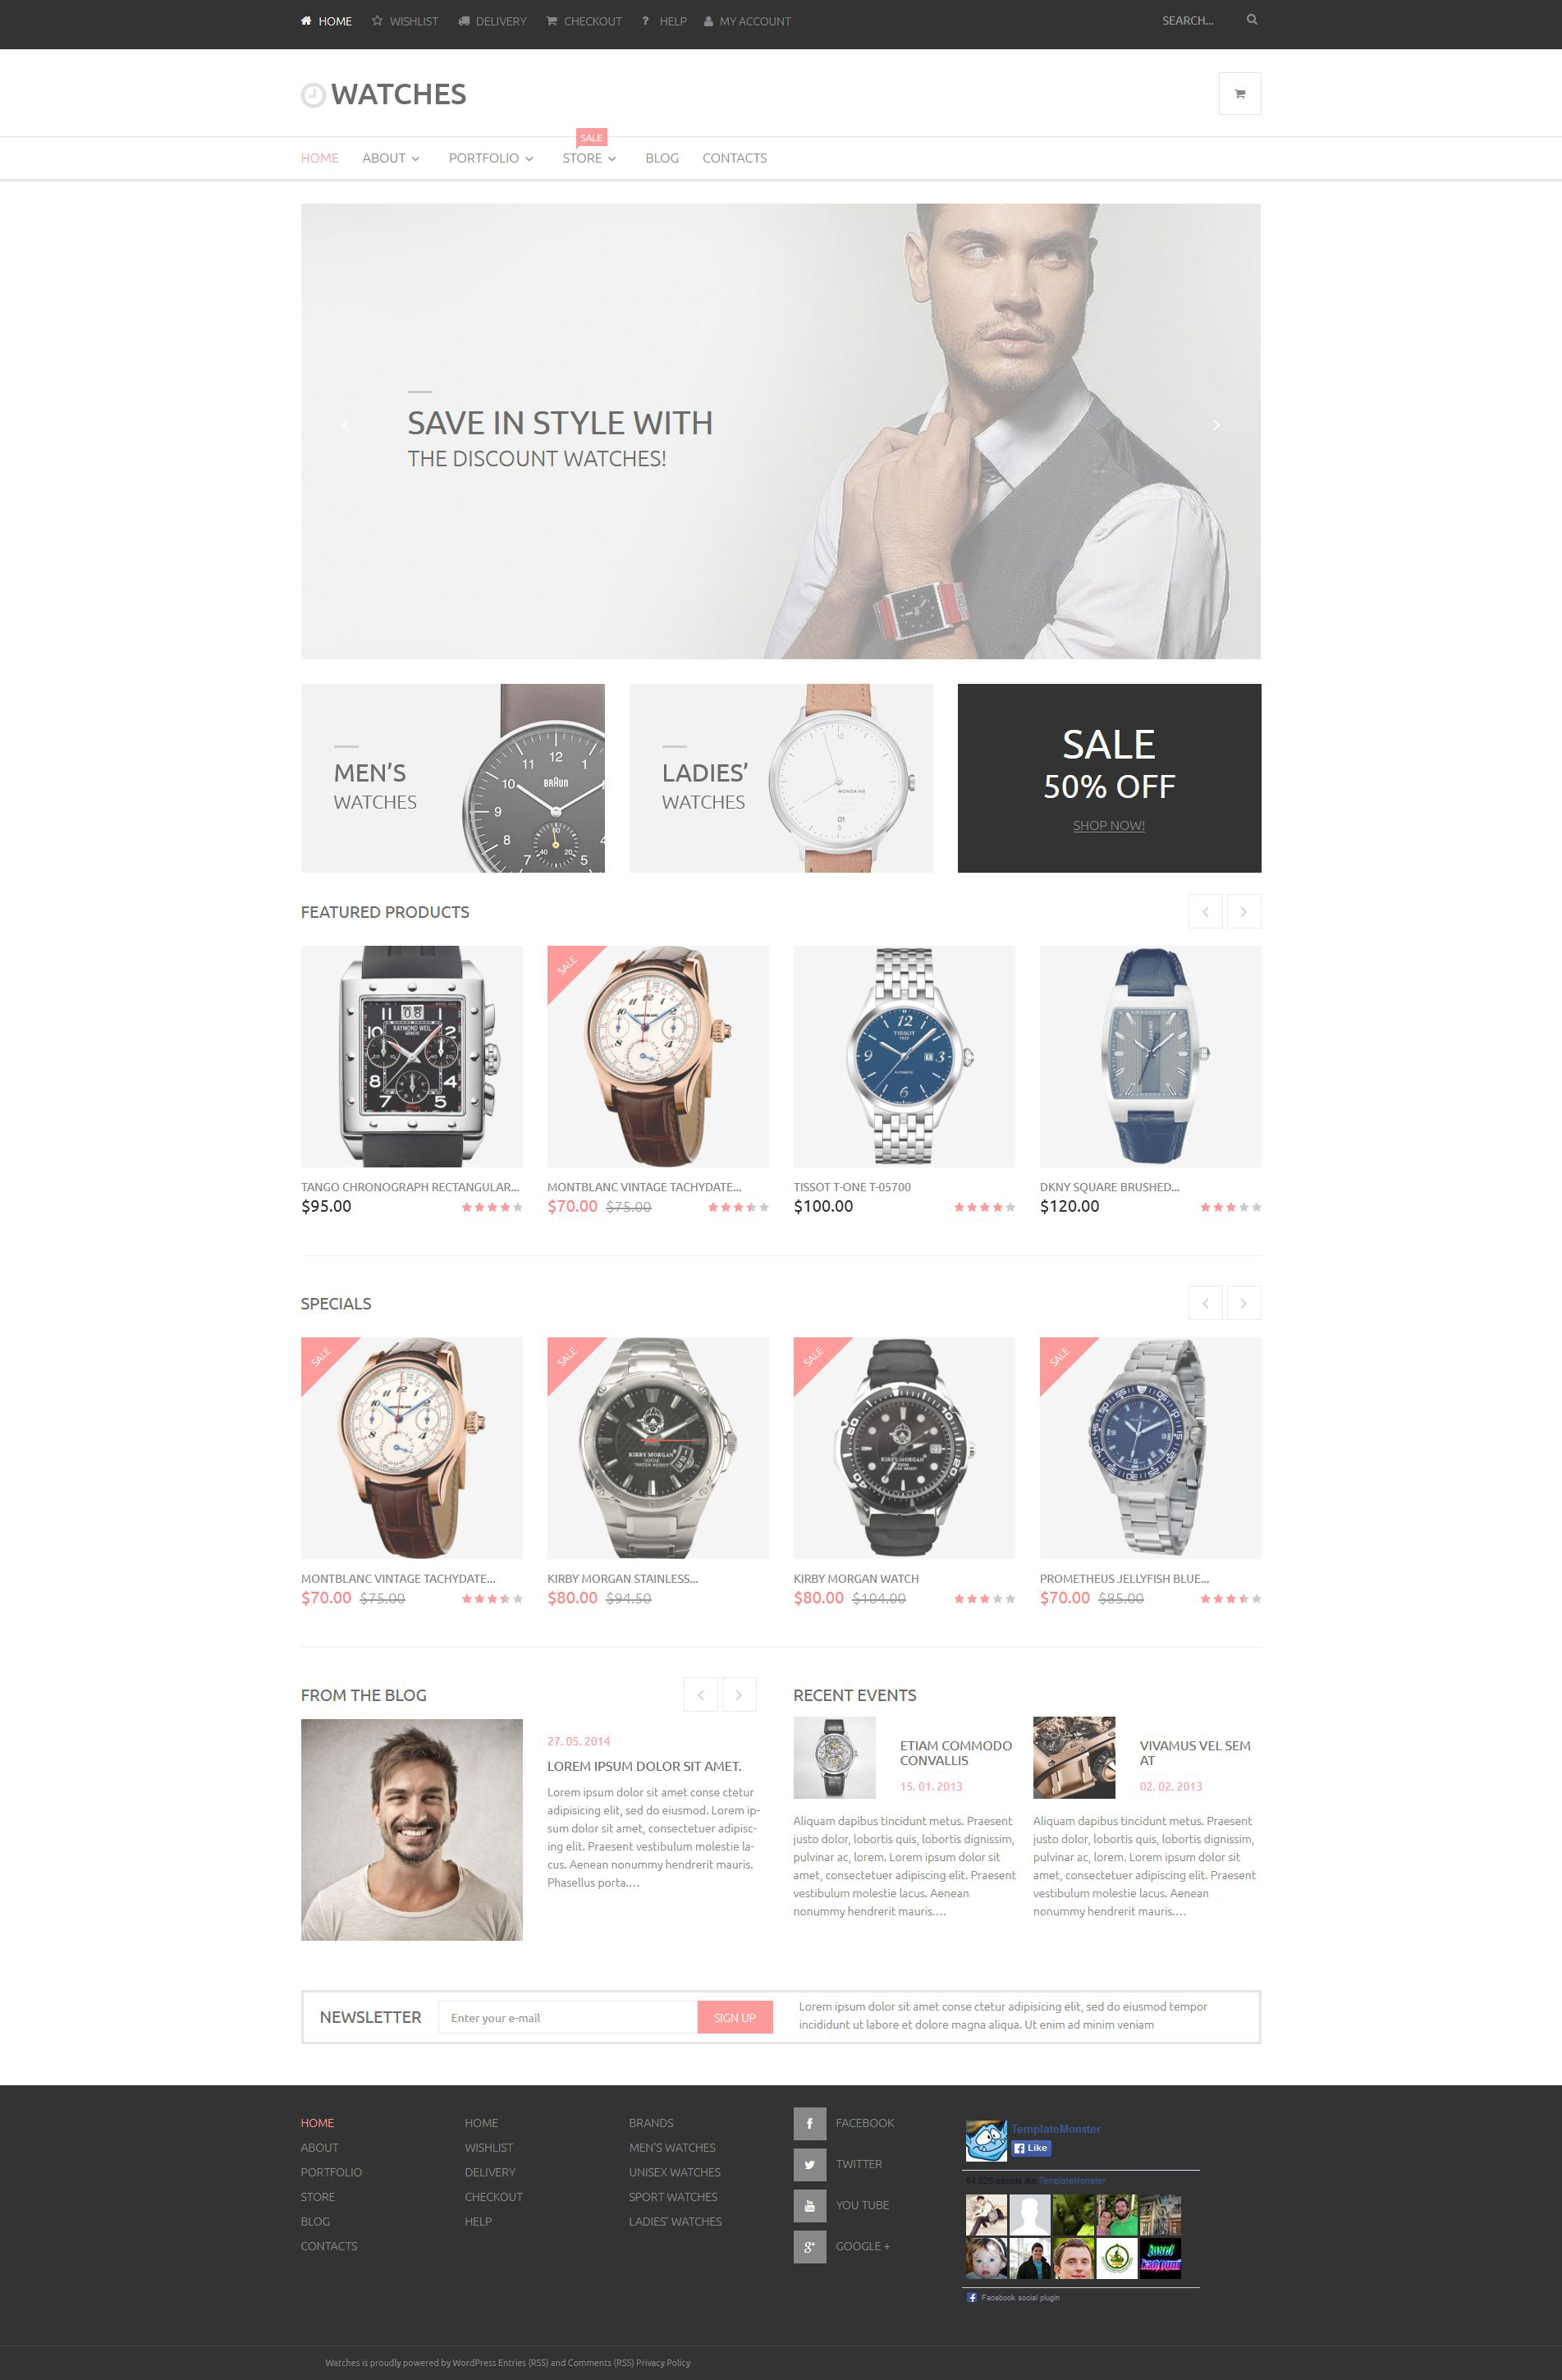 The Watches Online Store WooCommerce Design 53780, one of the best WooCommerce themes of its kind (wedding, most popular), also known as watches online store WooCommerce template, shopping WooCommerce template, purchase WooCommerce template, fashion WooCommerce template, sportive WooCommerce template, elegance WooCommerce template, feminine design company WooCommerce template, producer WooCommerce template, products WooCommerce template, pointers WooCommerce template, collection WooCommerce template, order WooCommerce template, history WooCommerce template, tradition WooCommerce template, Switzerland Swiss watches WooCommerce template, Omega Longines Tissot Rolex Chrono Candino clock WooCommerce template, face and related with watches online store, shopping, purchase, fashion, sportive, elegance, feminine design company, producer, products, pointers, collection, order, history, tradition, Switzerland Swiss watches, Omega Longines Tissot Rolex Chrono Candino clock, face, etc.